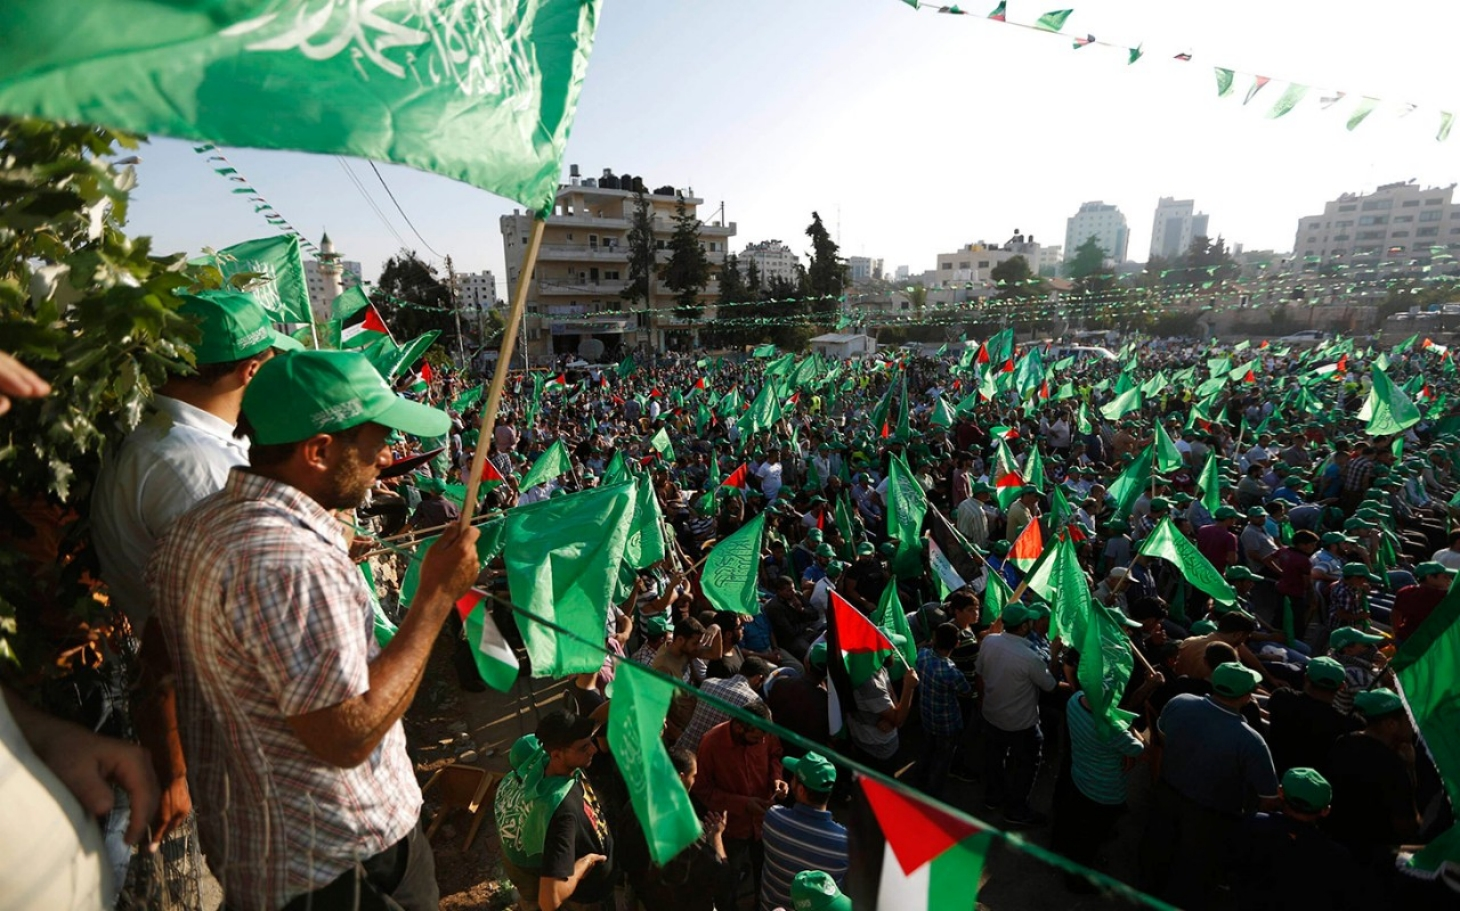 Support for Hamas armed confrontation spikes after Gaza